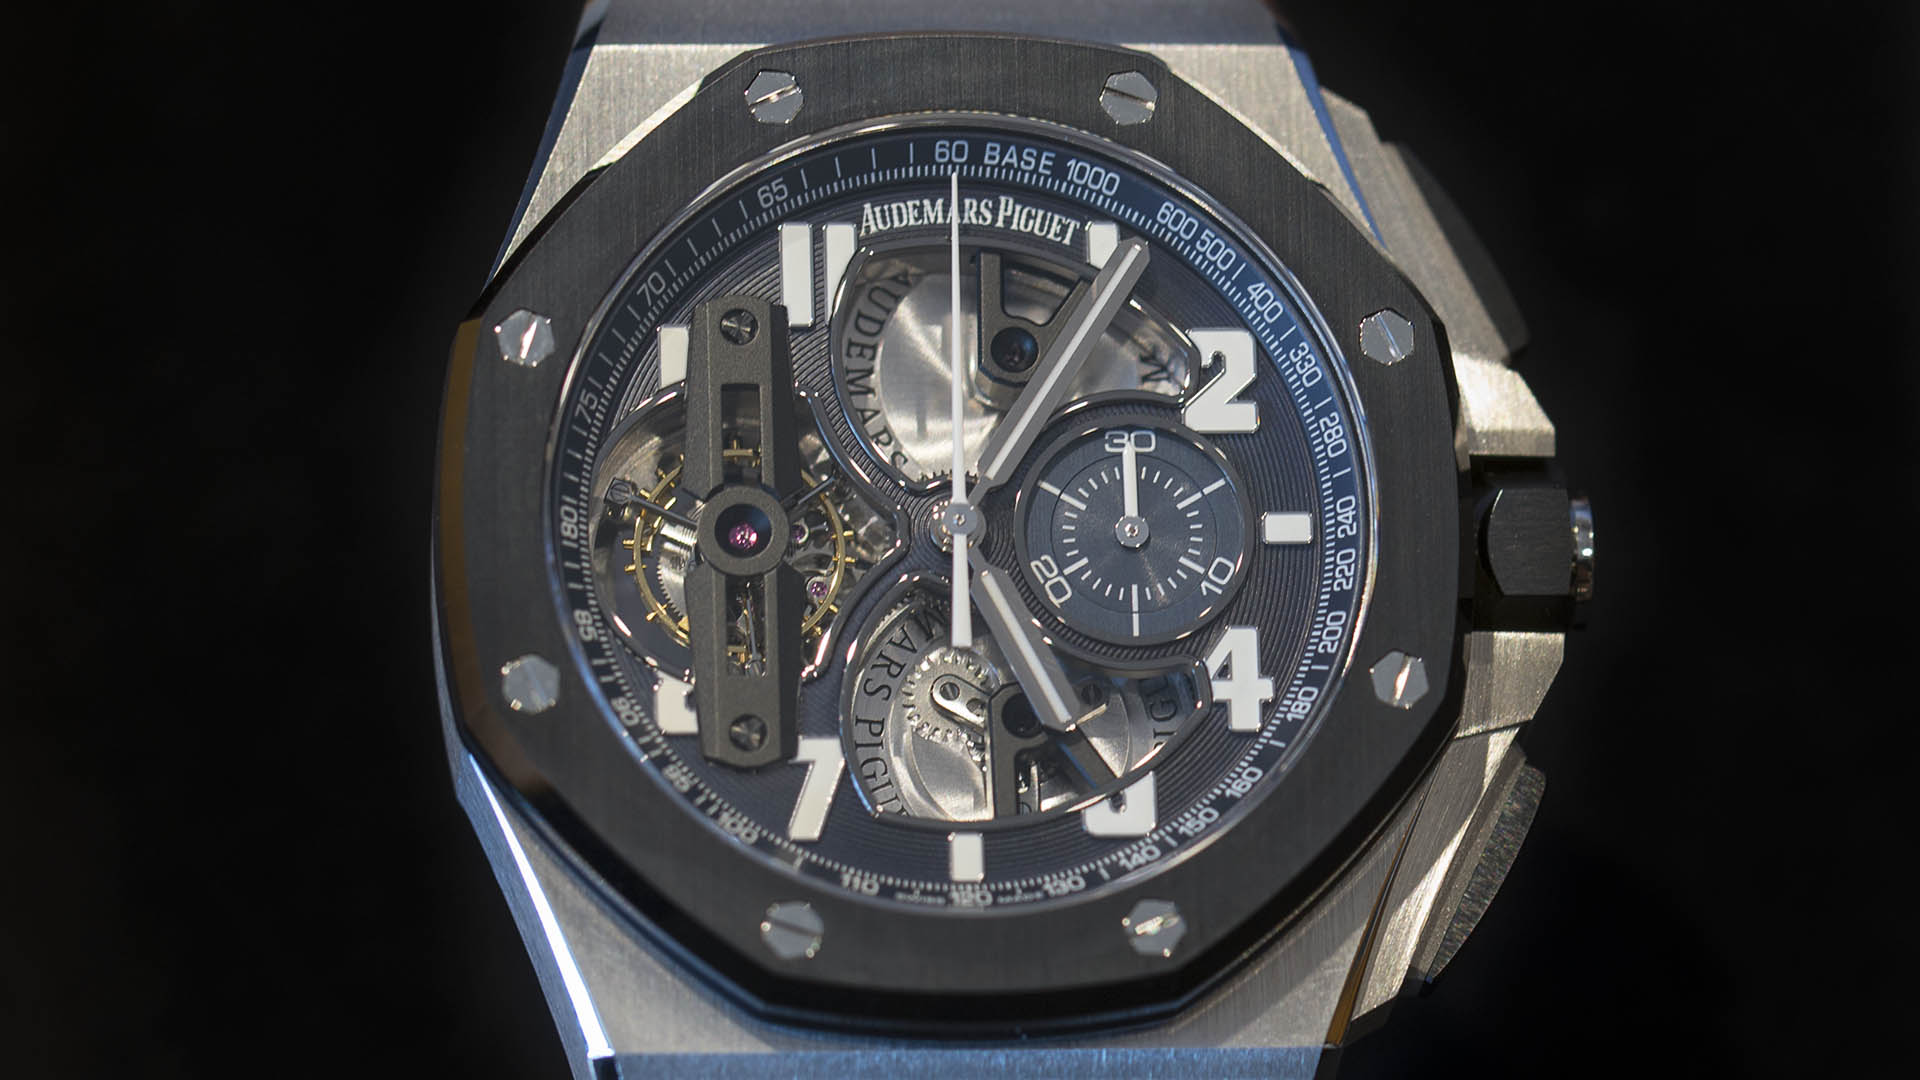 ROYAL_OAK_OFFSHORE_TOURB-LLON_CHRONOGRAPH_26388PO-OO-D027CA-01_1.jpg